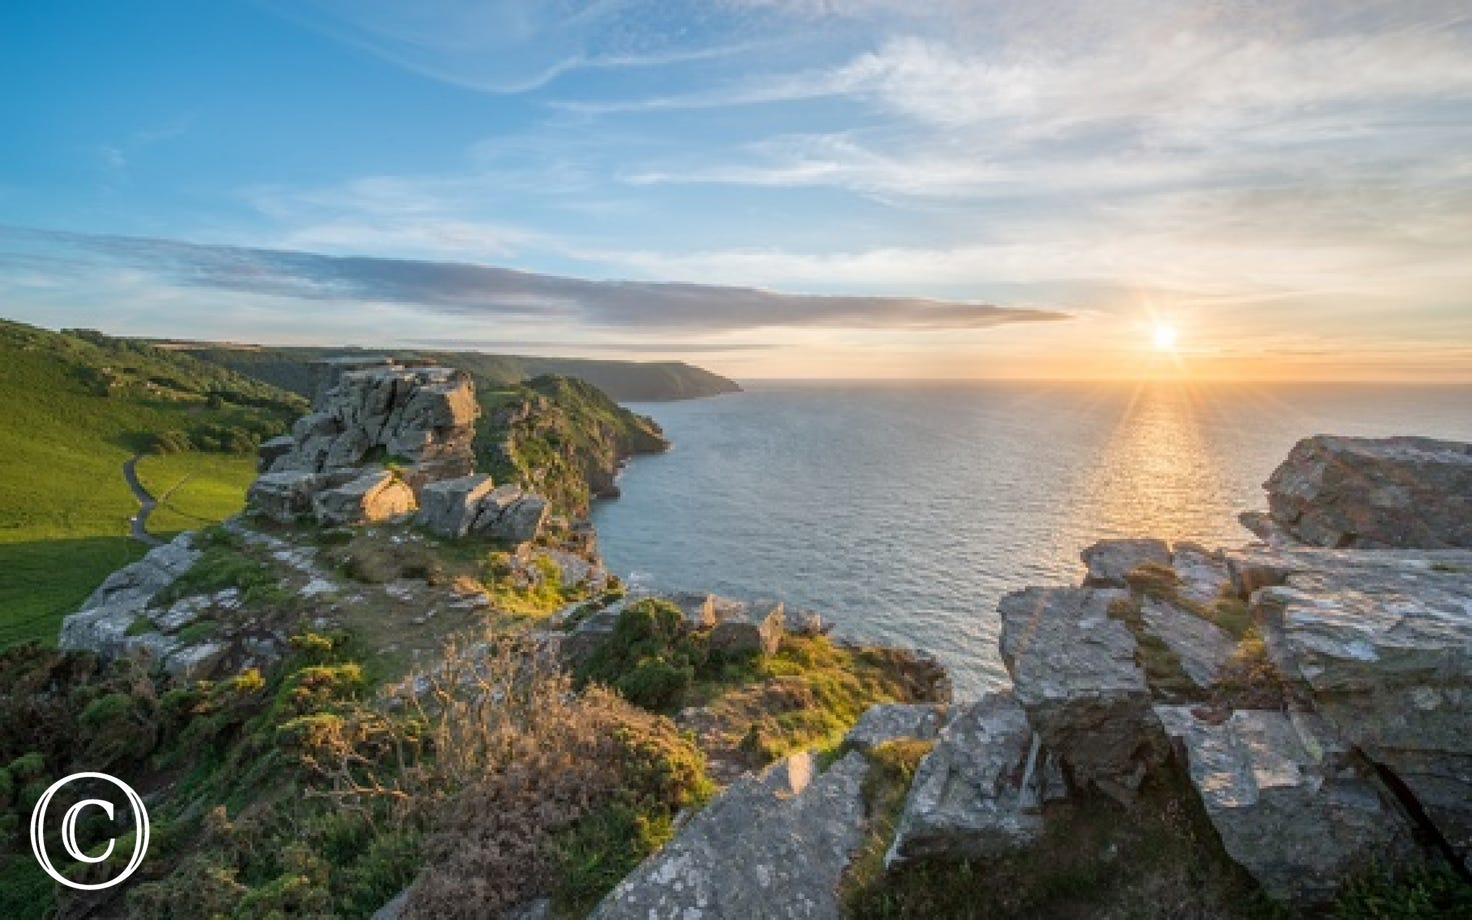 Stunning vistas at Valley of Rocks - just a short drive away